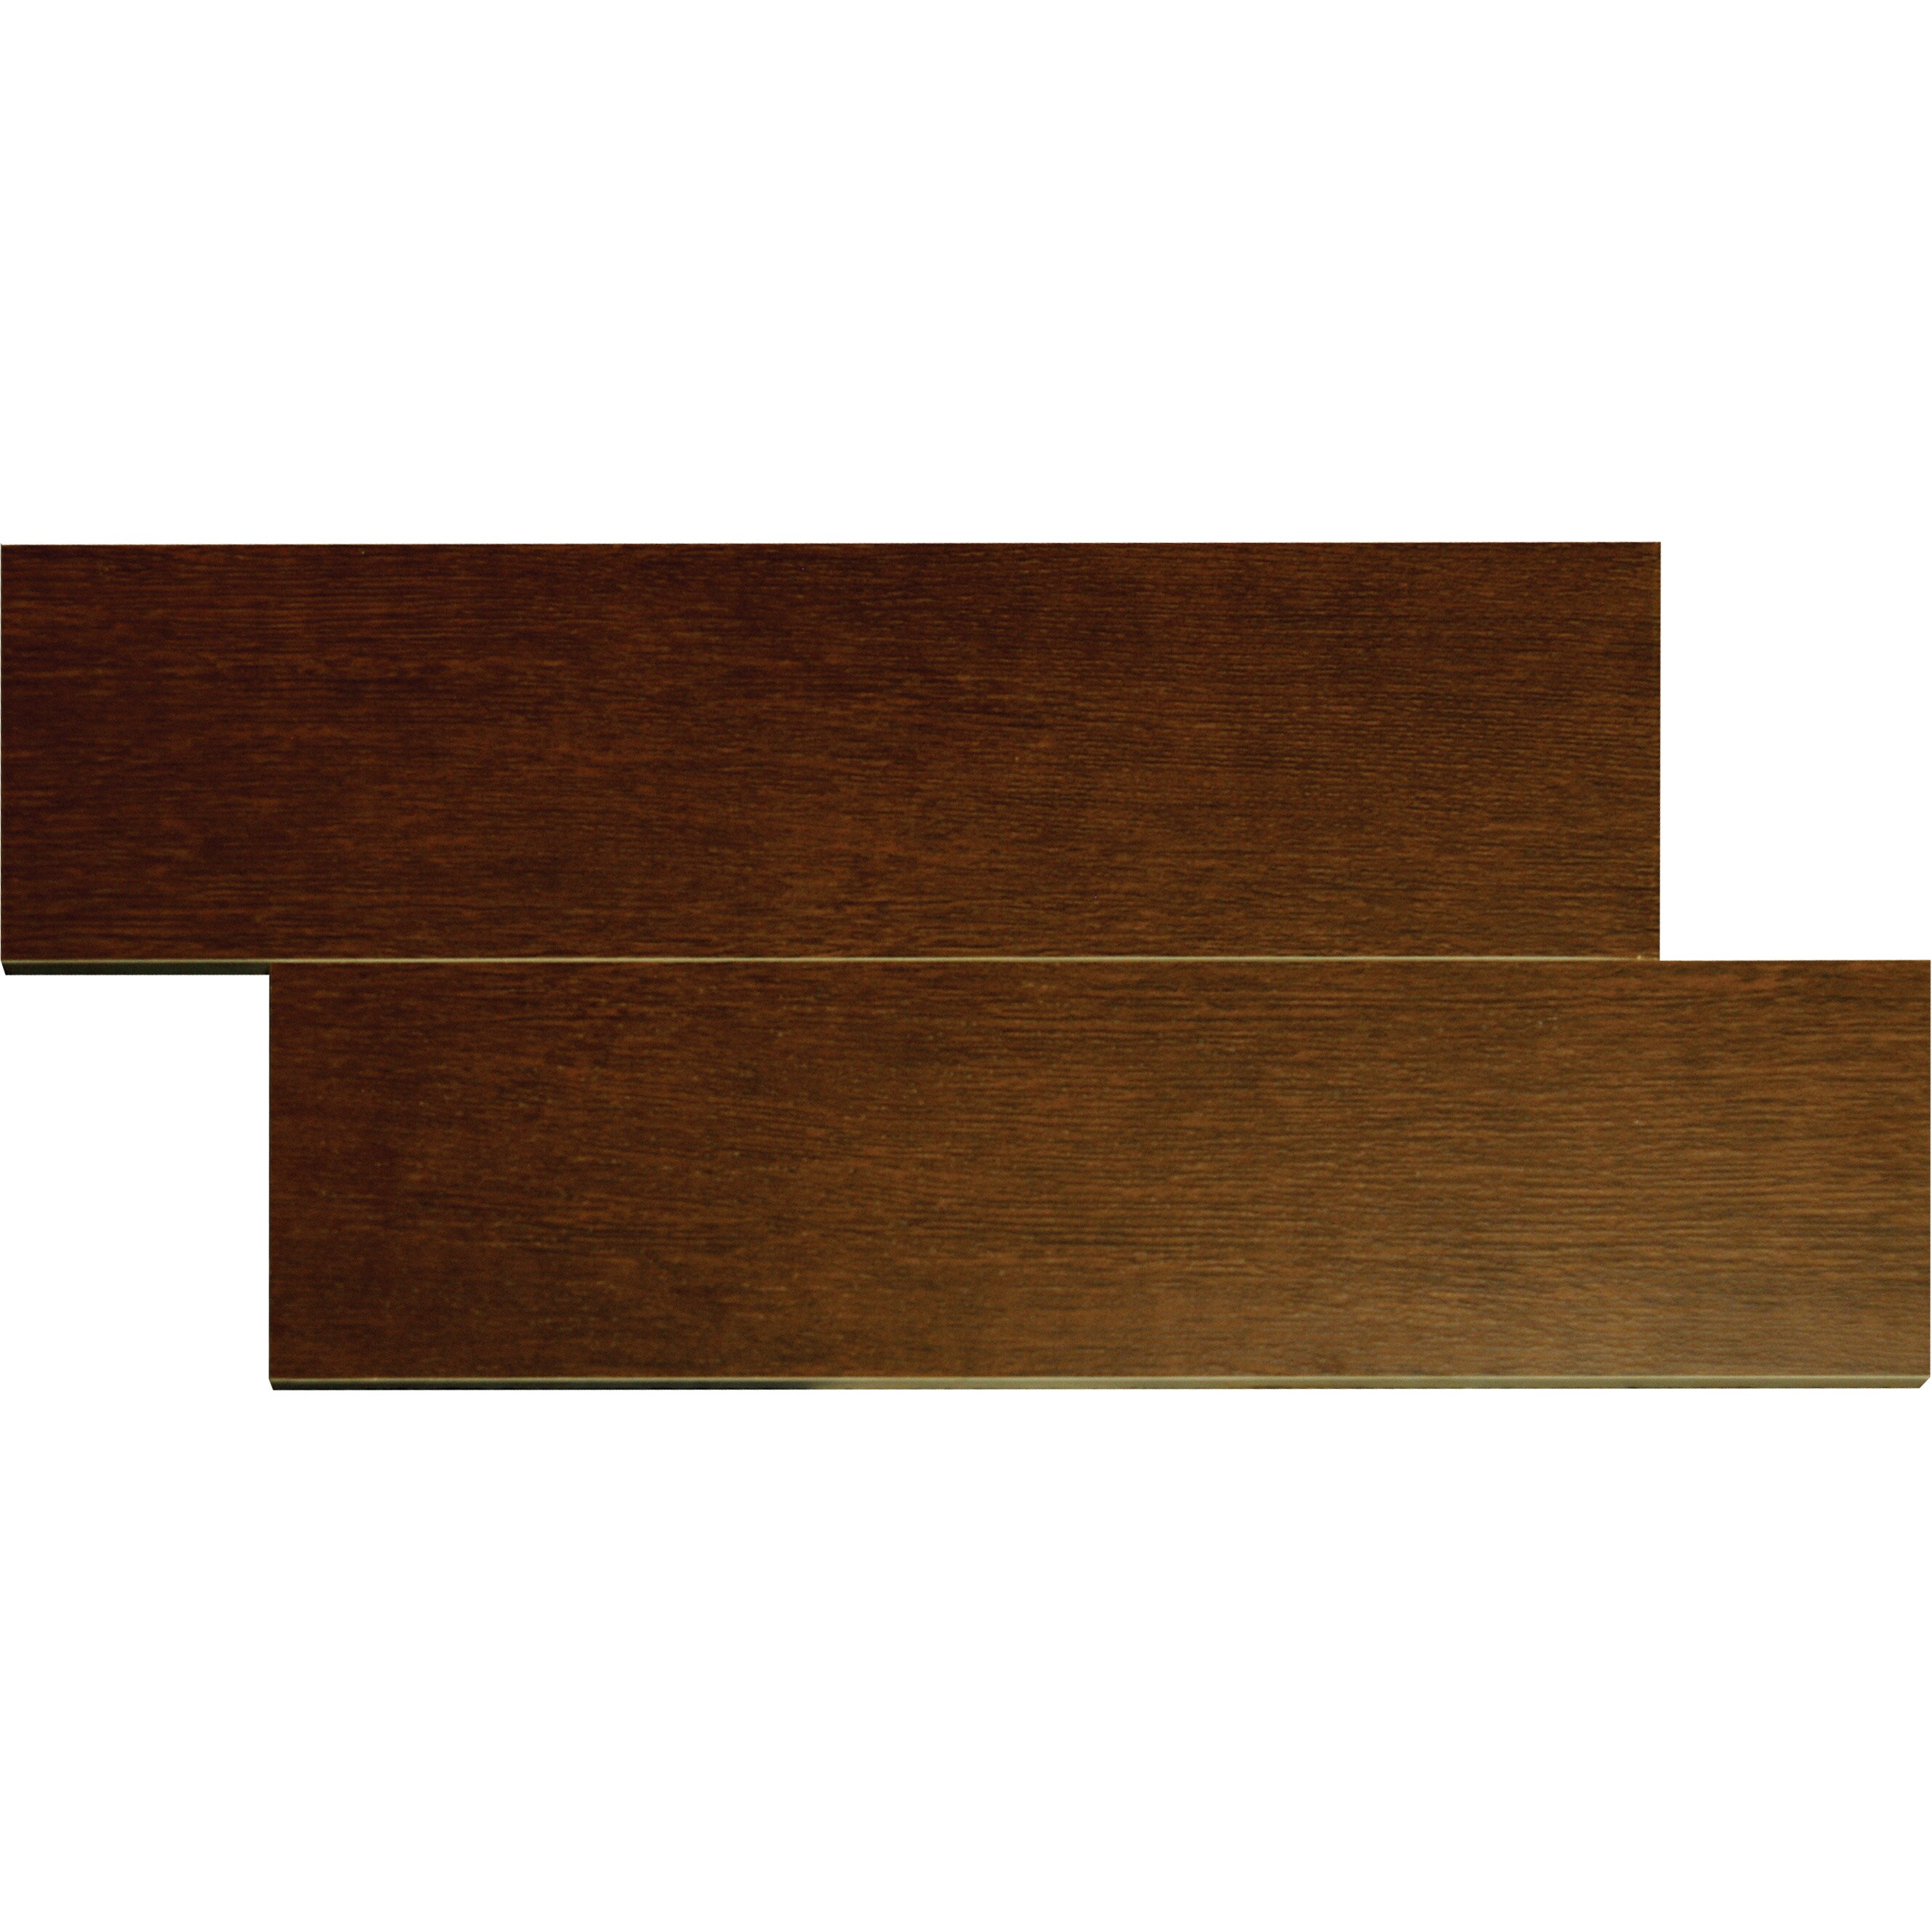 "MSI Wood Stone 6"" x 24"" Ceramic Wood Look Tile in Mahogany & Reviews"